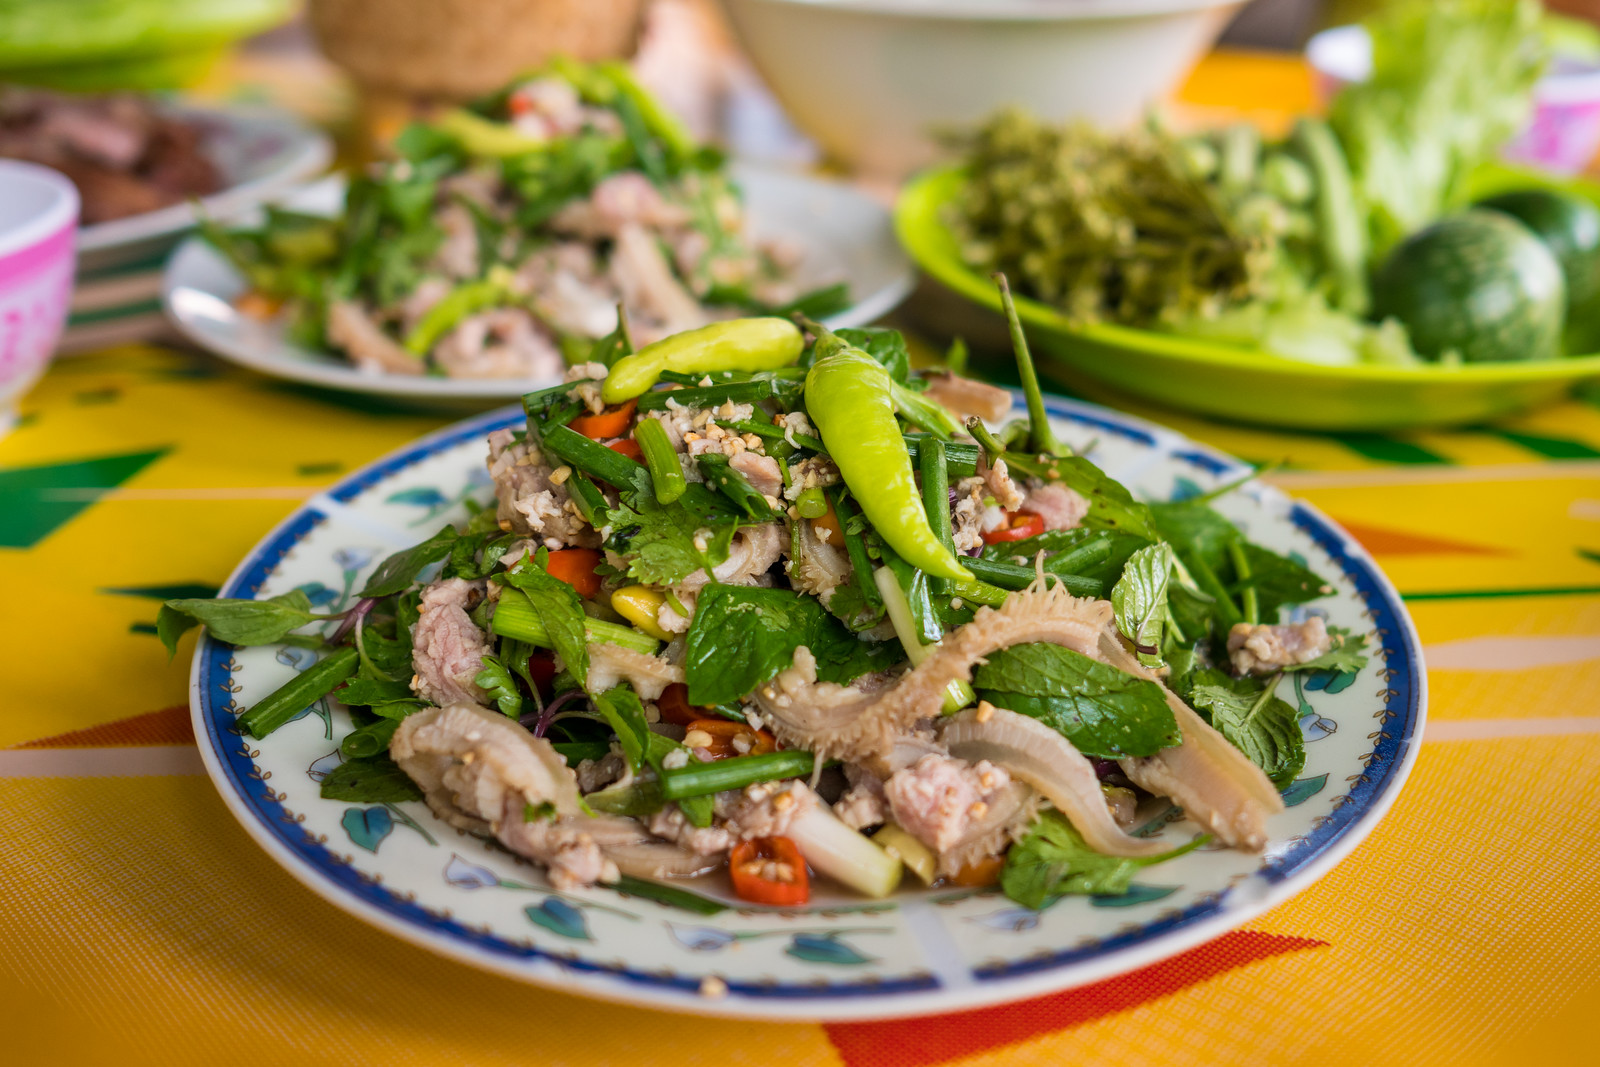 Laap - The National Dish of Laos